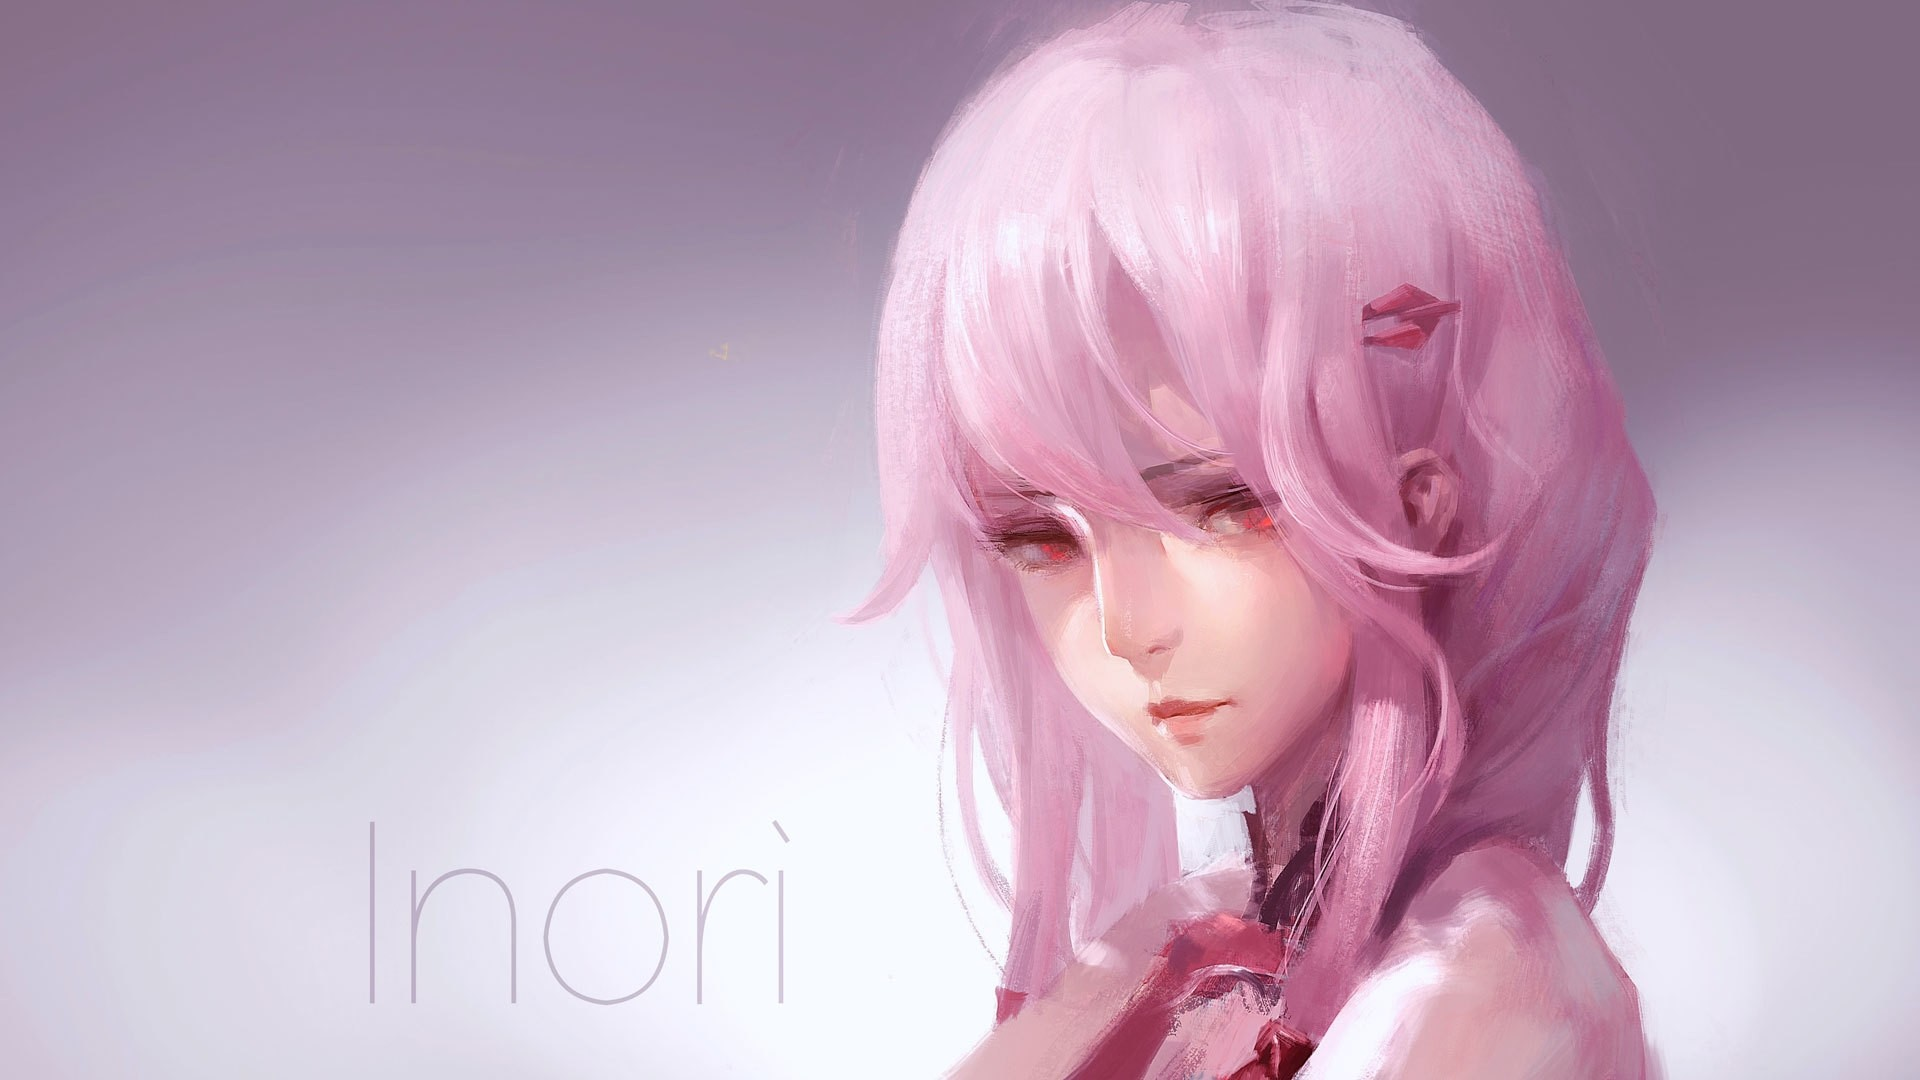 Characters With Pink Hair Wallpaper for pc